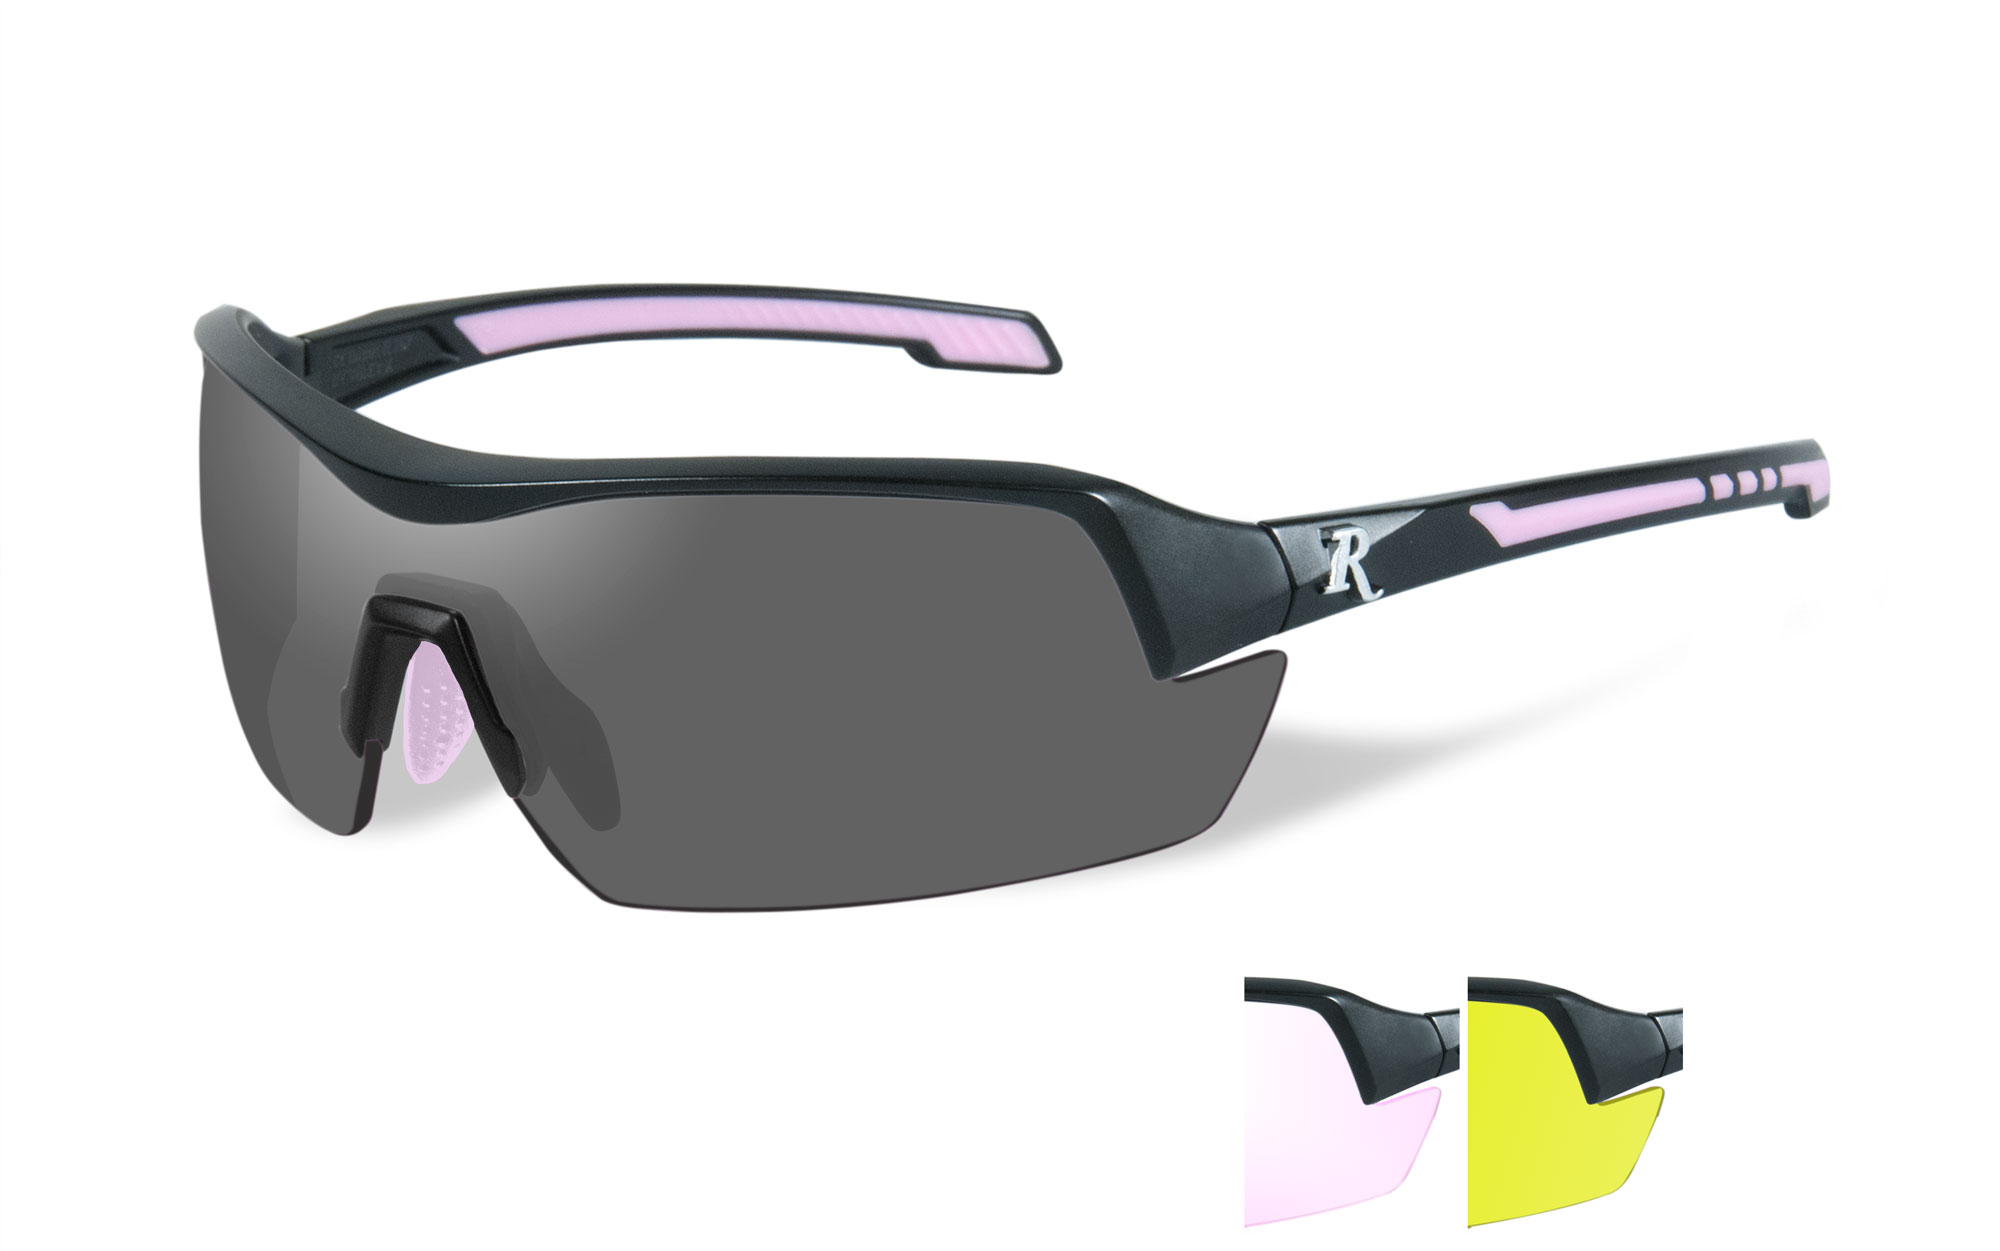 Matte Black with Pink / 3 Lens Kit